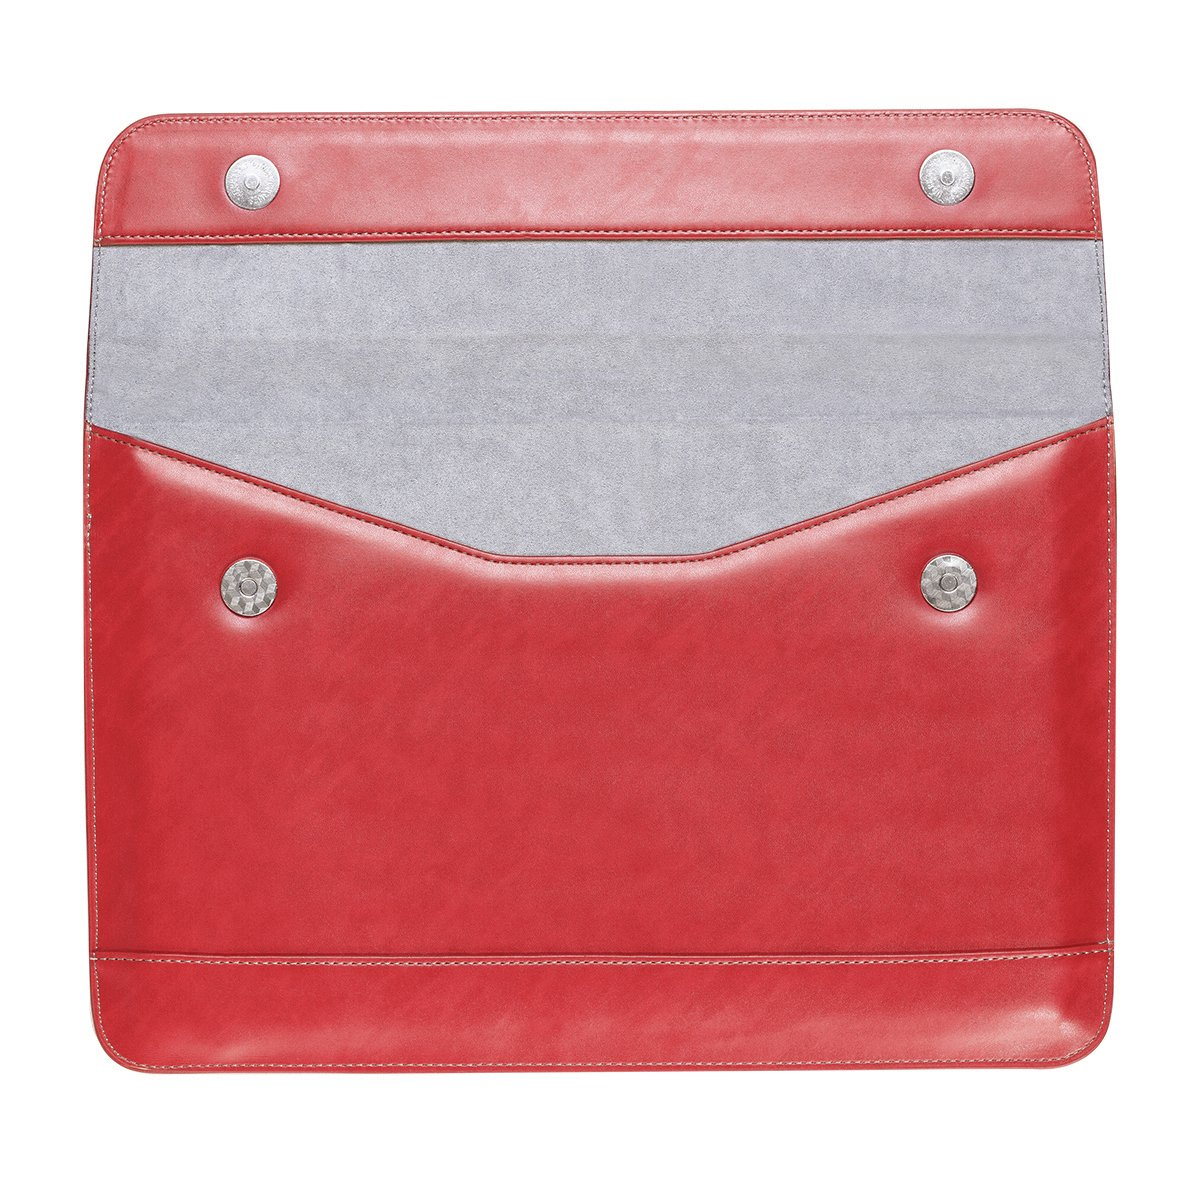 LENTION 13-Inch Split Leather Laptop Sleeve Bag for 2019 2018 MacBook Air//2019-2016 MacBook Pro Protective Case Cover with Magnetic Snaps Red More iPad Pro 12.9 13-inch, with Thunderbolt 3